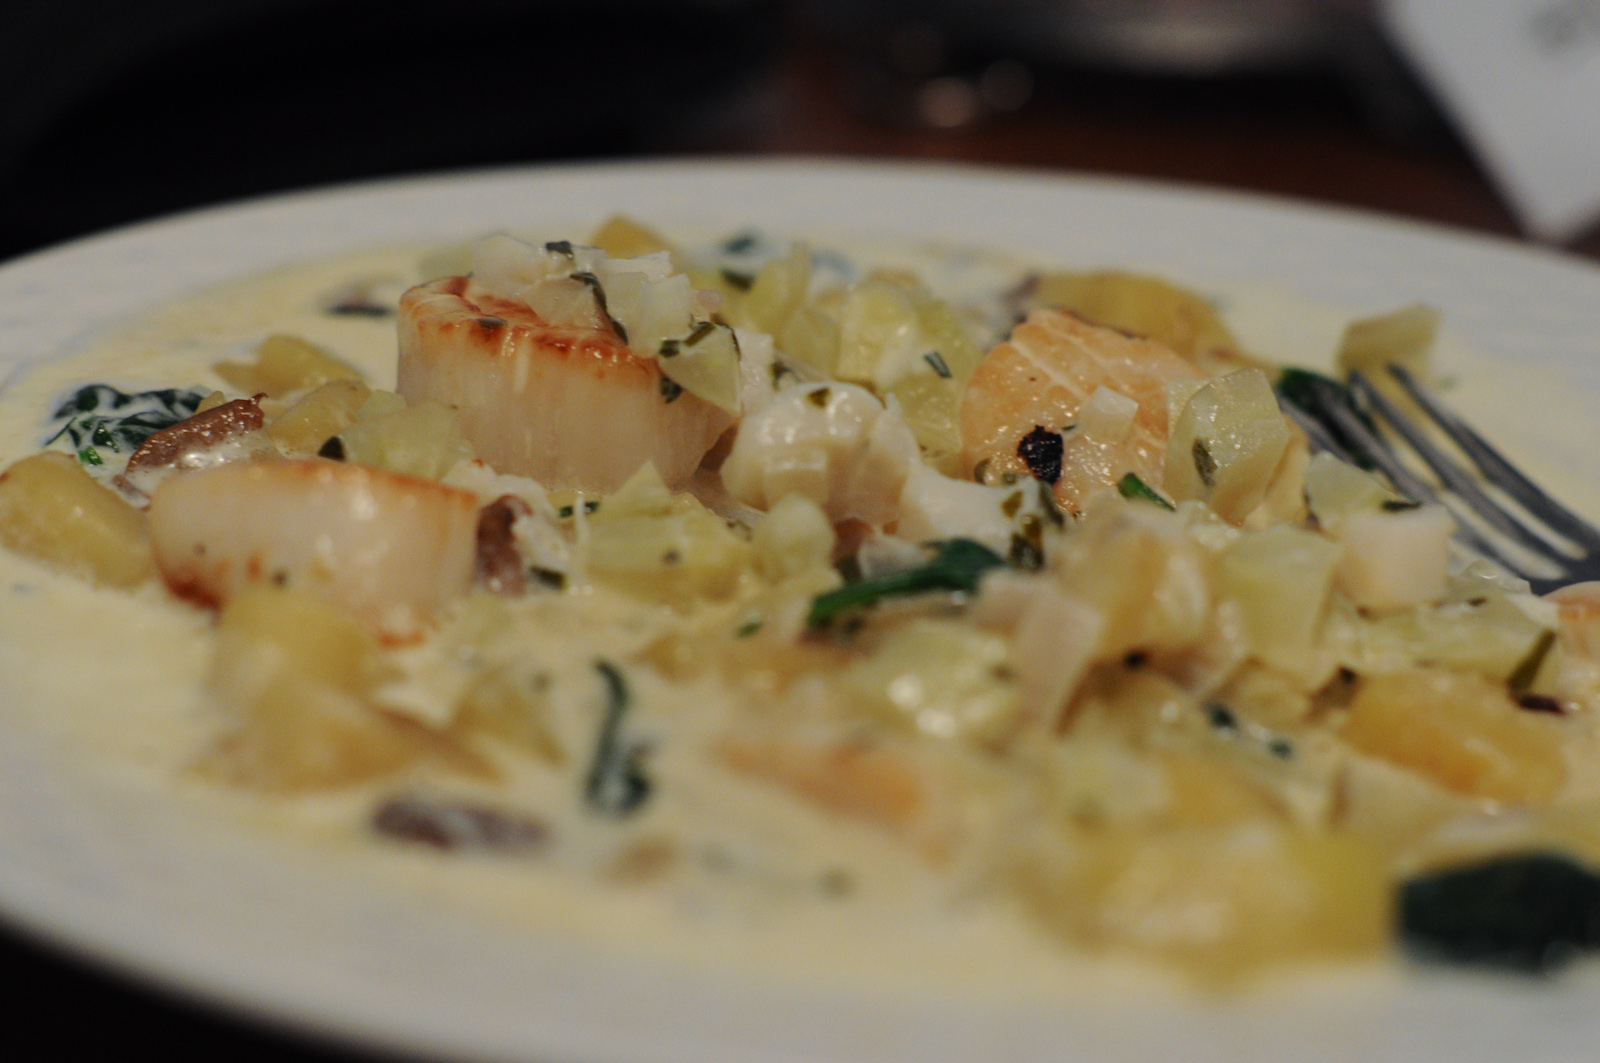 Pan-seared sea scallops in a cream sauce on top of risotto